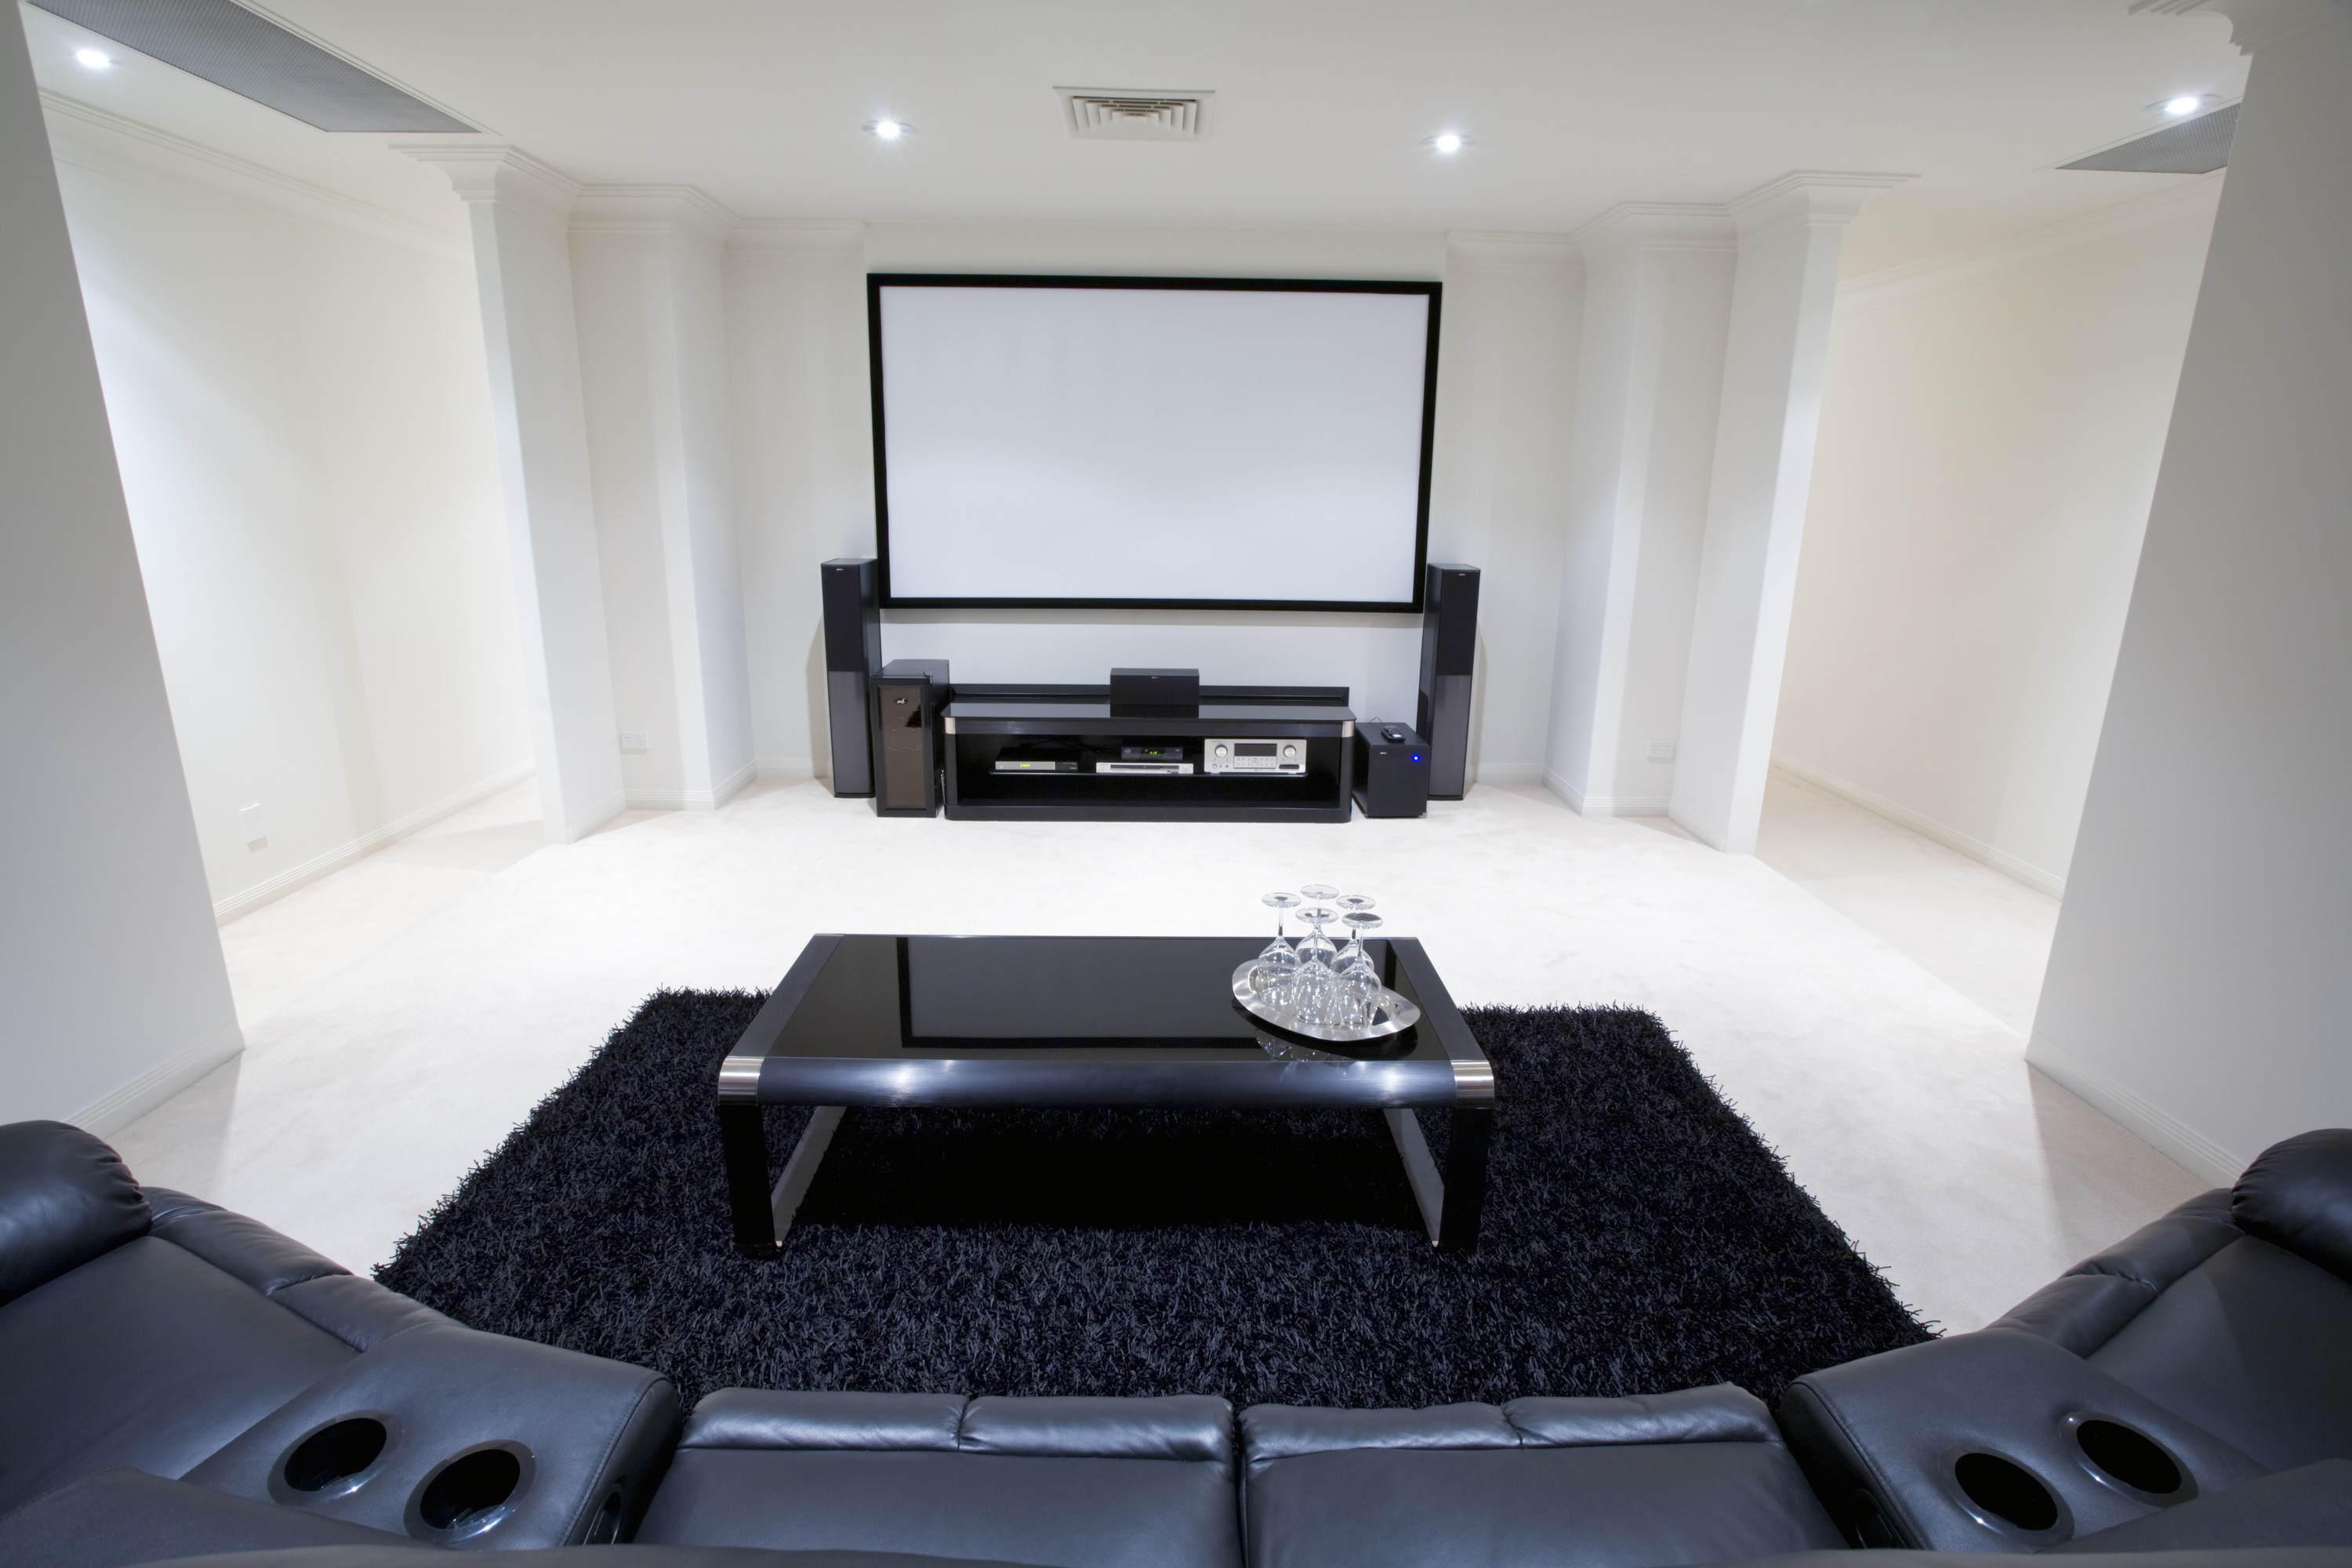 Quietglue pro home cinemas for 1234 get on the dance floor full hd video download